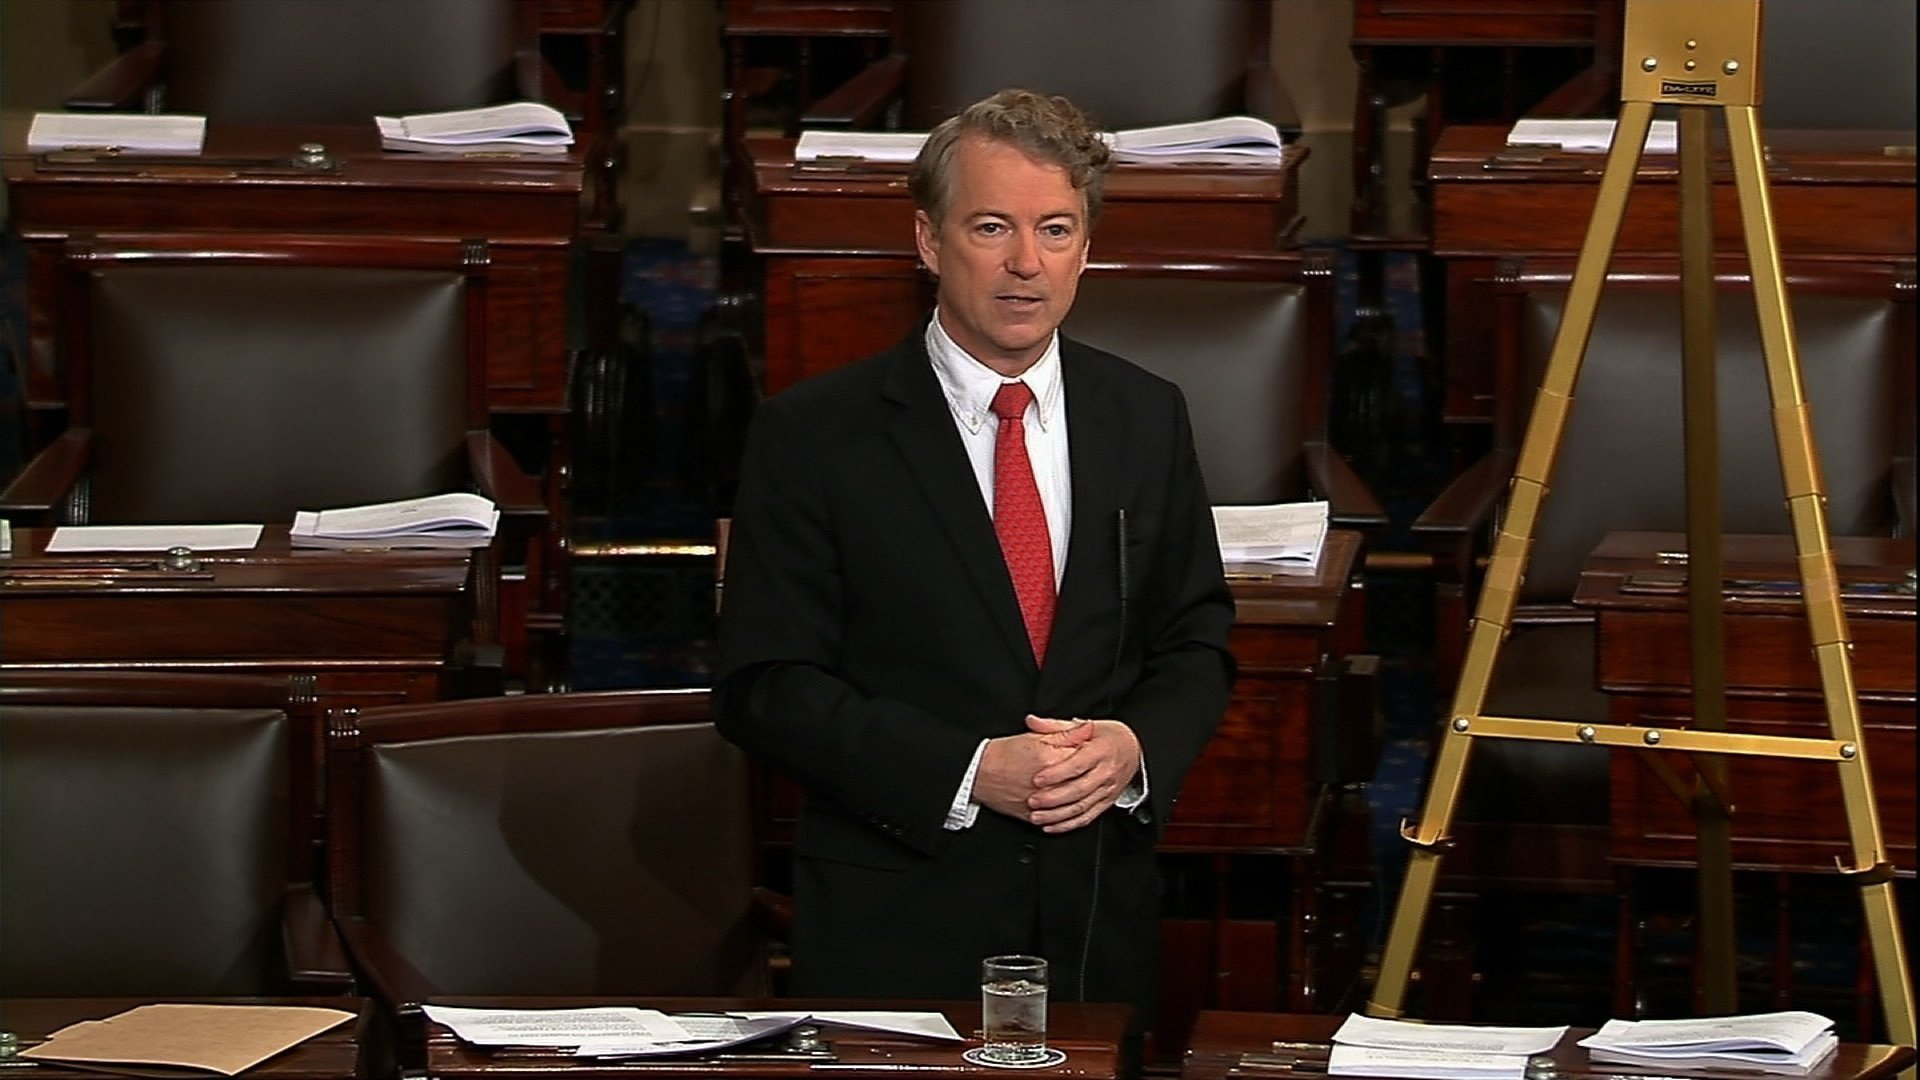 Kentucky Sen. Rand Paul is speaking on the Senate floor, holding up a two-year budget deal with the hours ticking away toward a midnight deadline before the government starts shutting down.